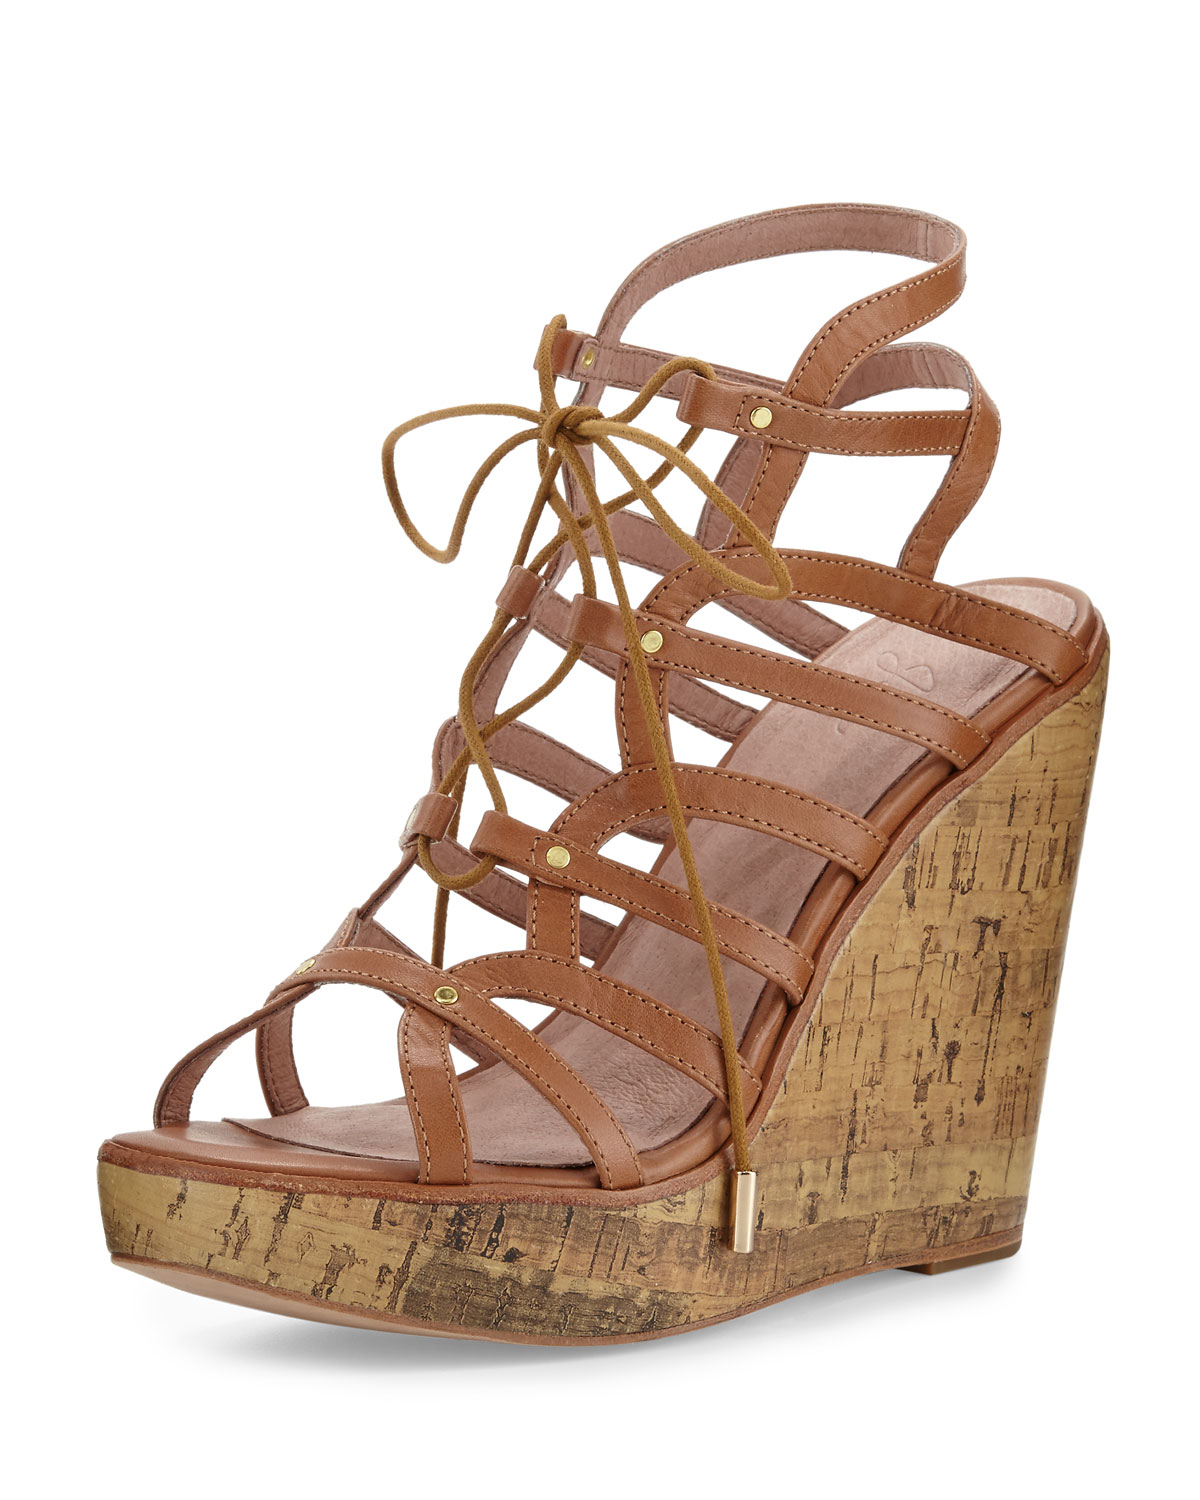 9ad67ed3a431 Joie Larissa Gladiator Wedge Sandals